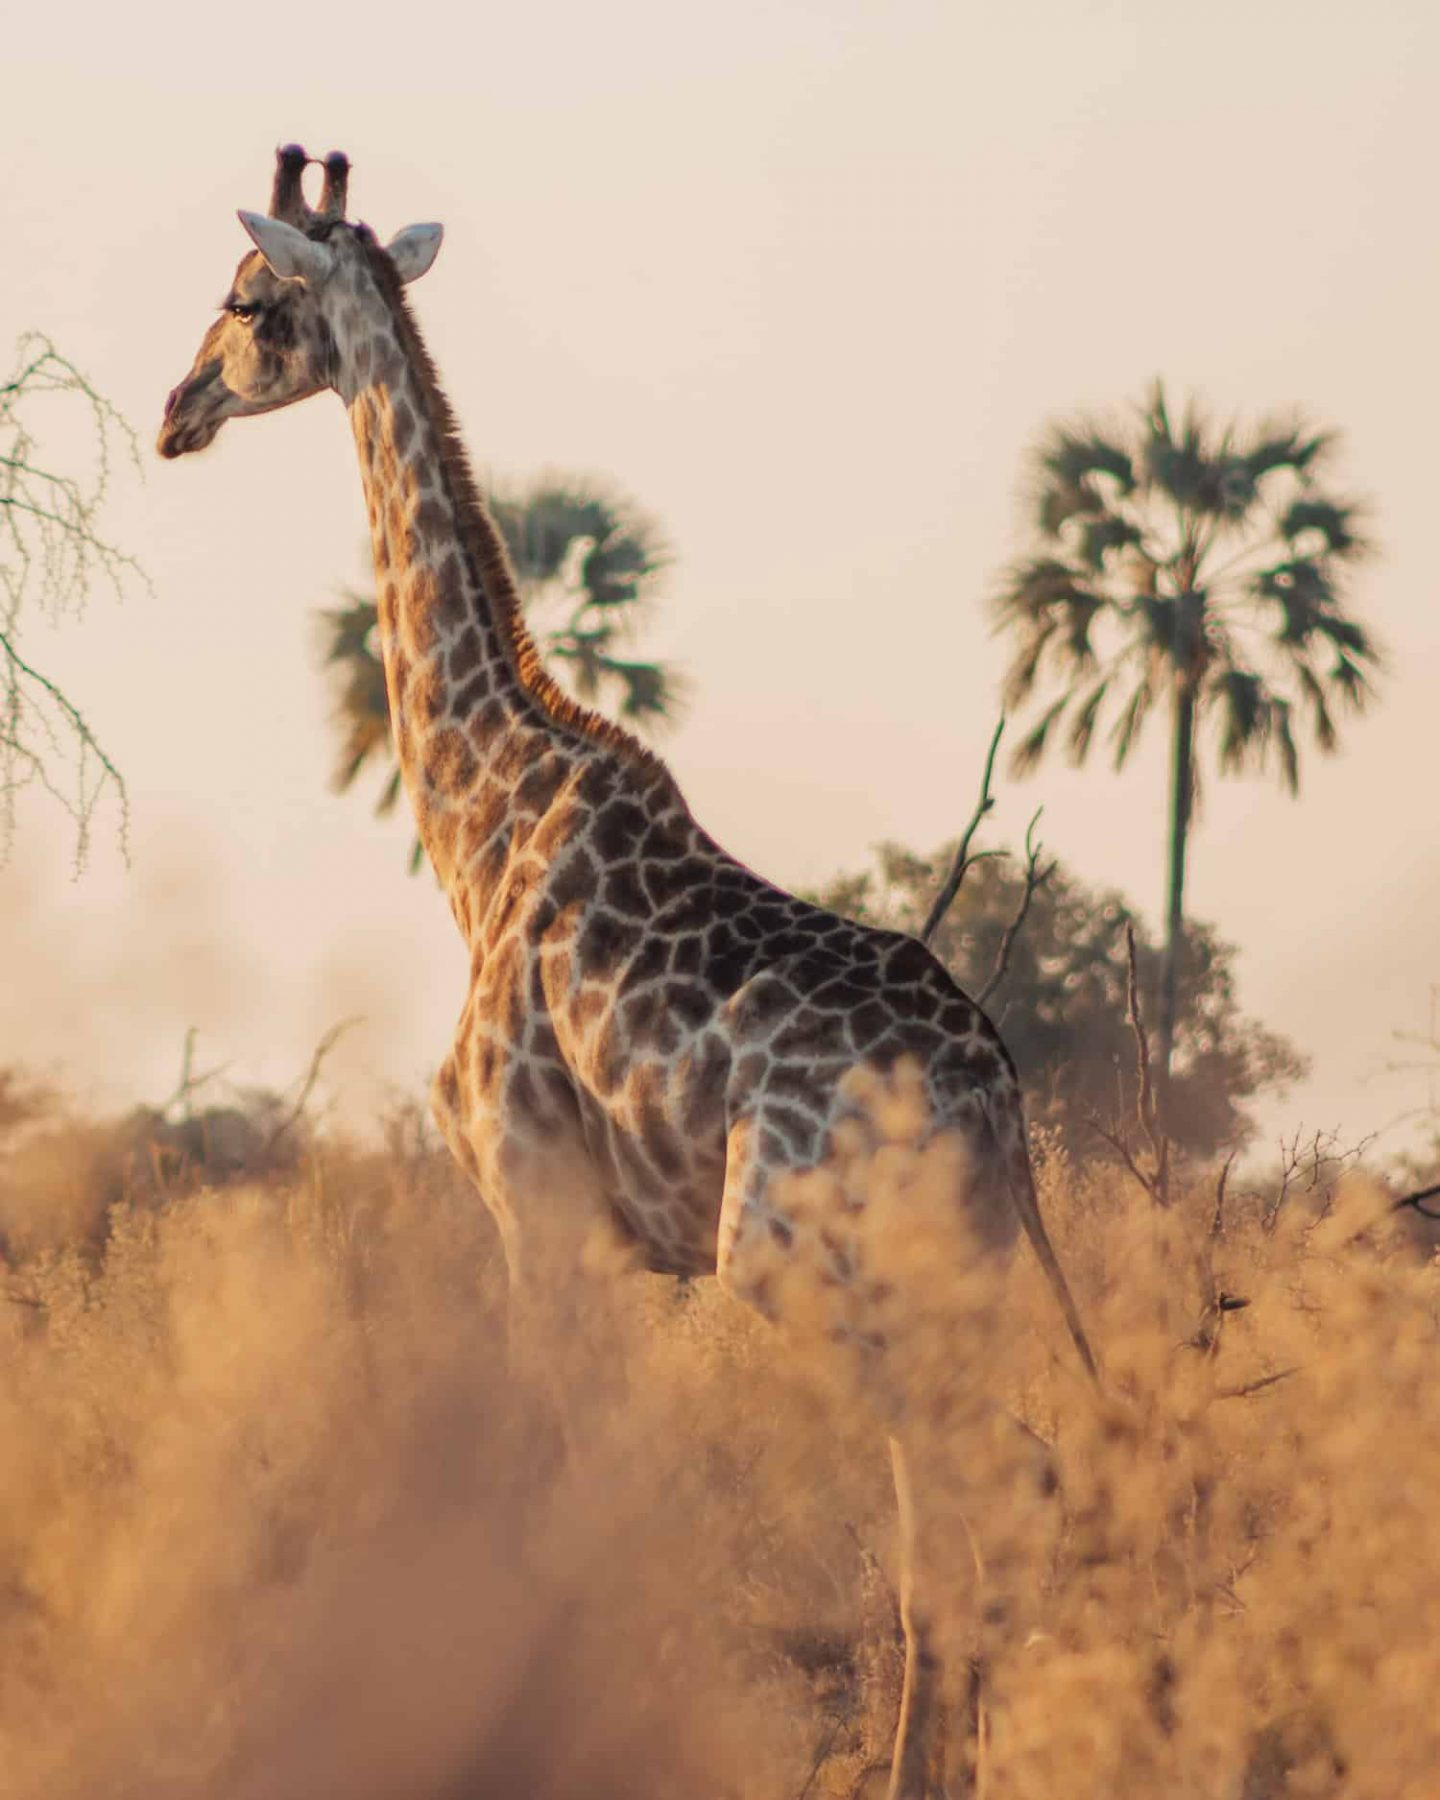 giraffe in the okavango delta